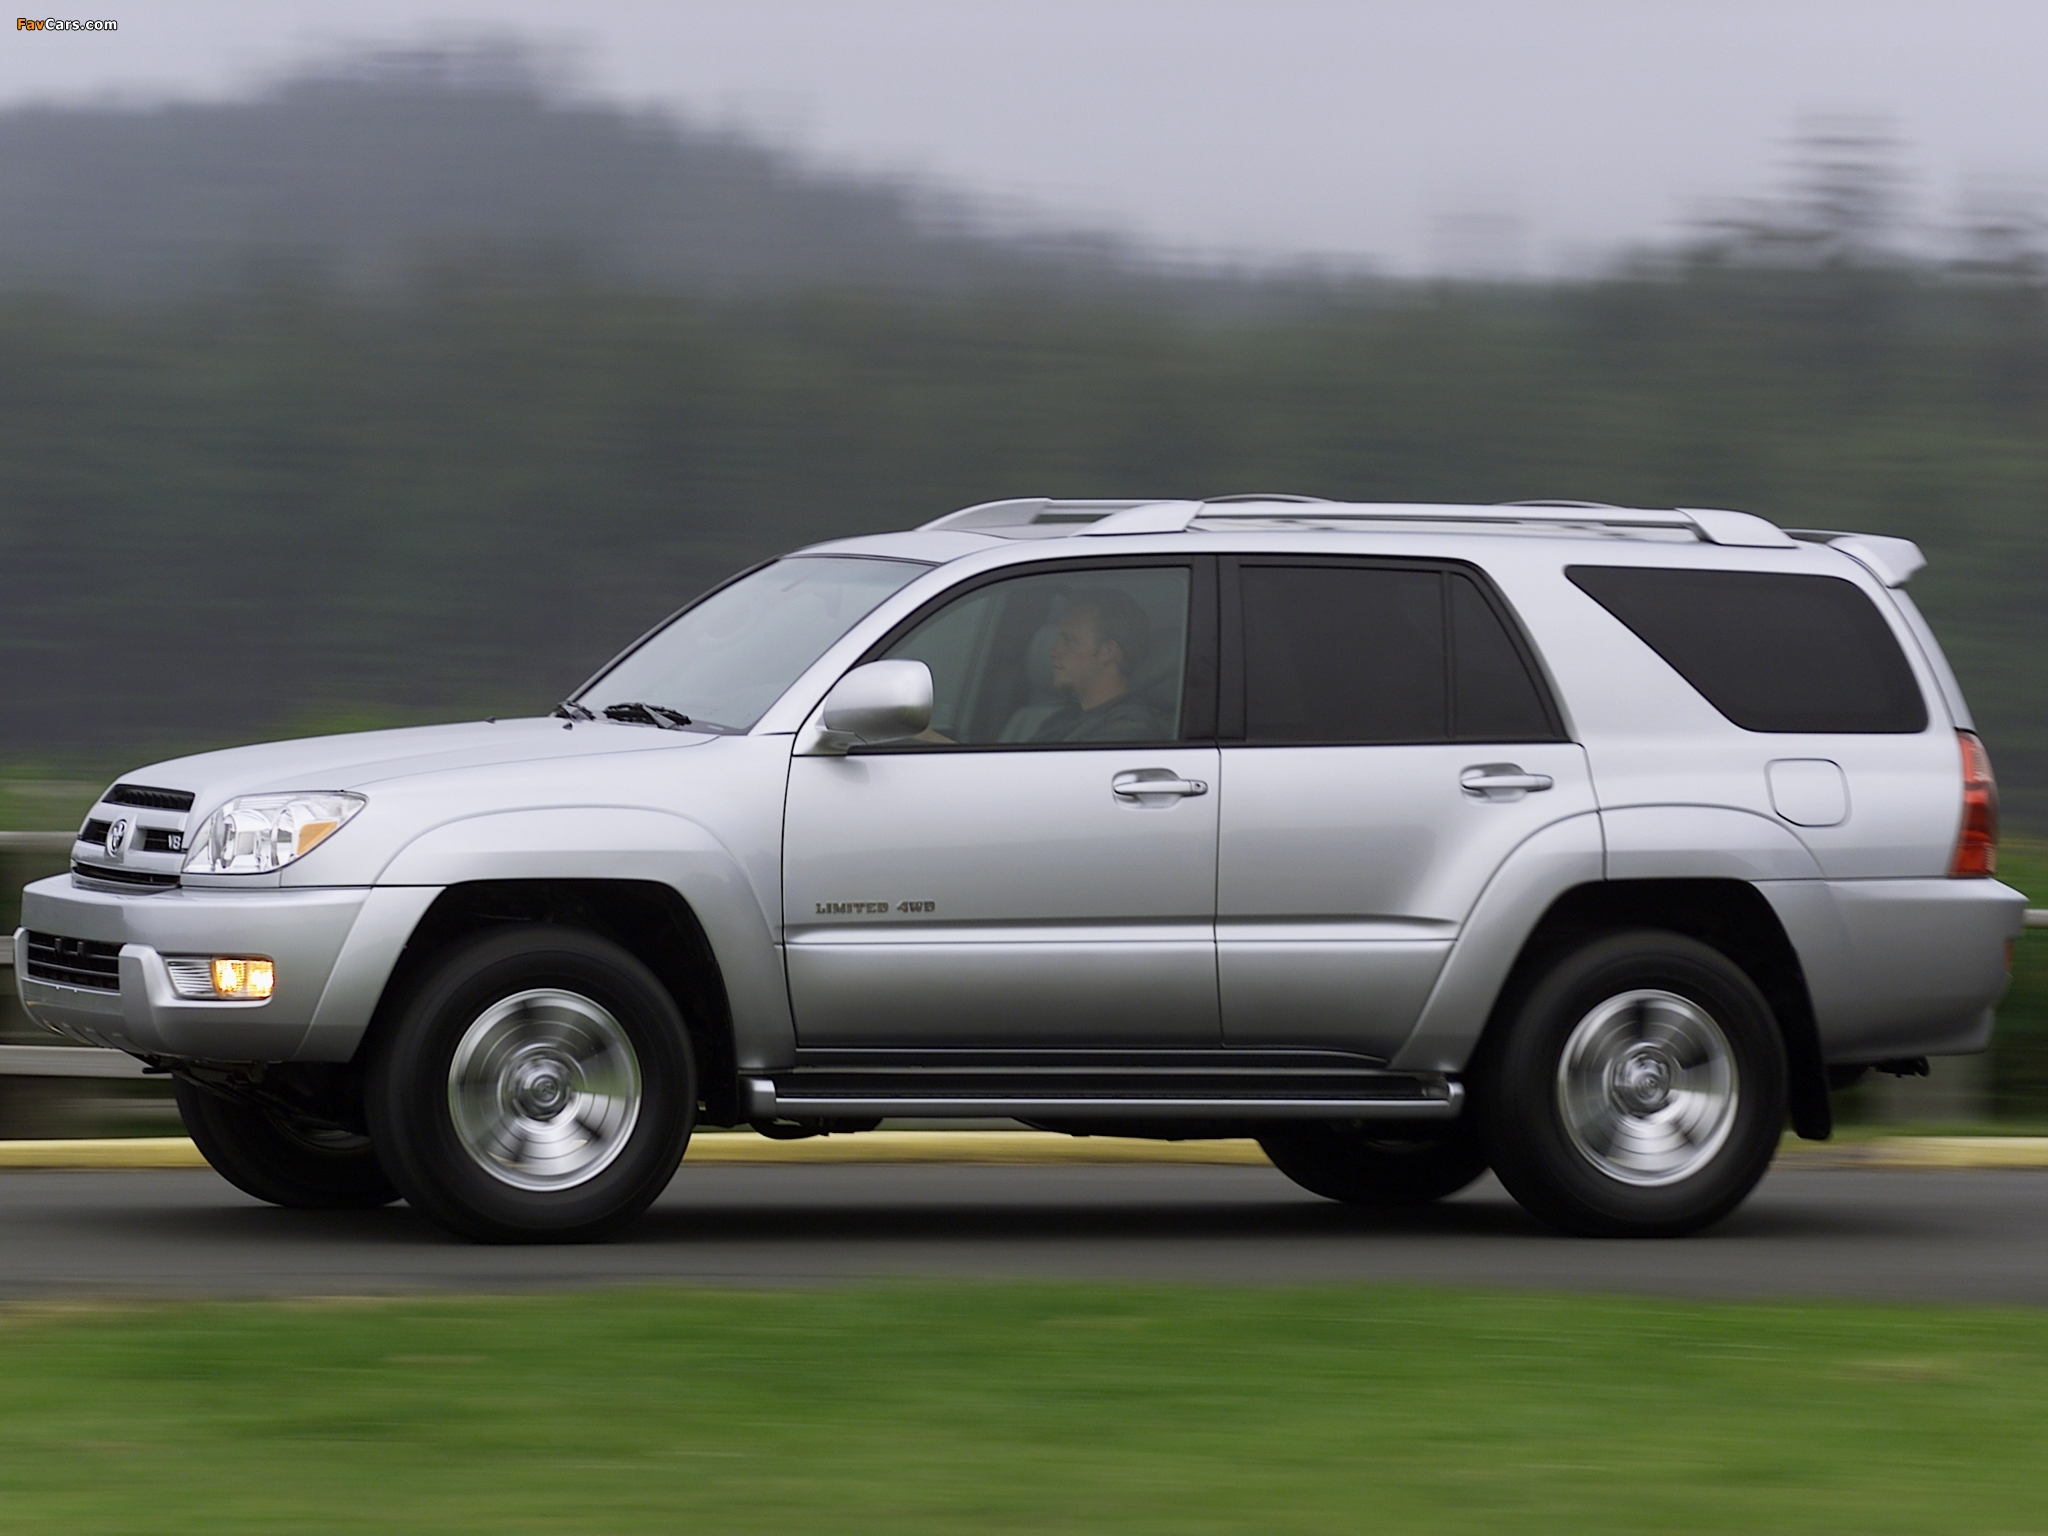 Toyota 4runner Limited 2003 05 Wallpapers 2048x1536